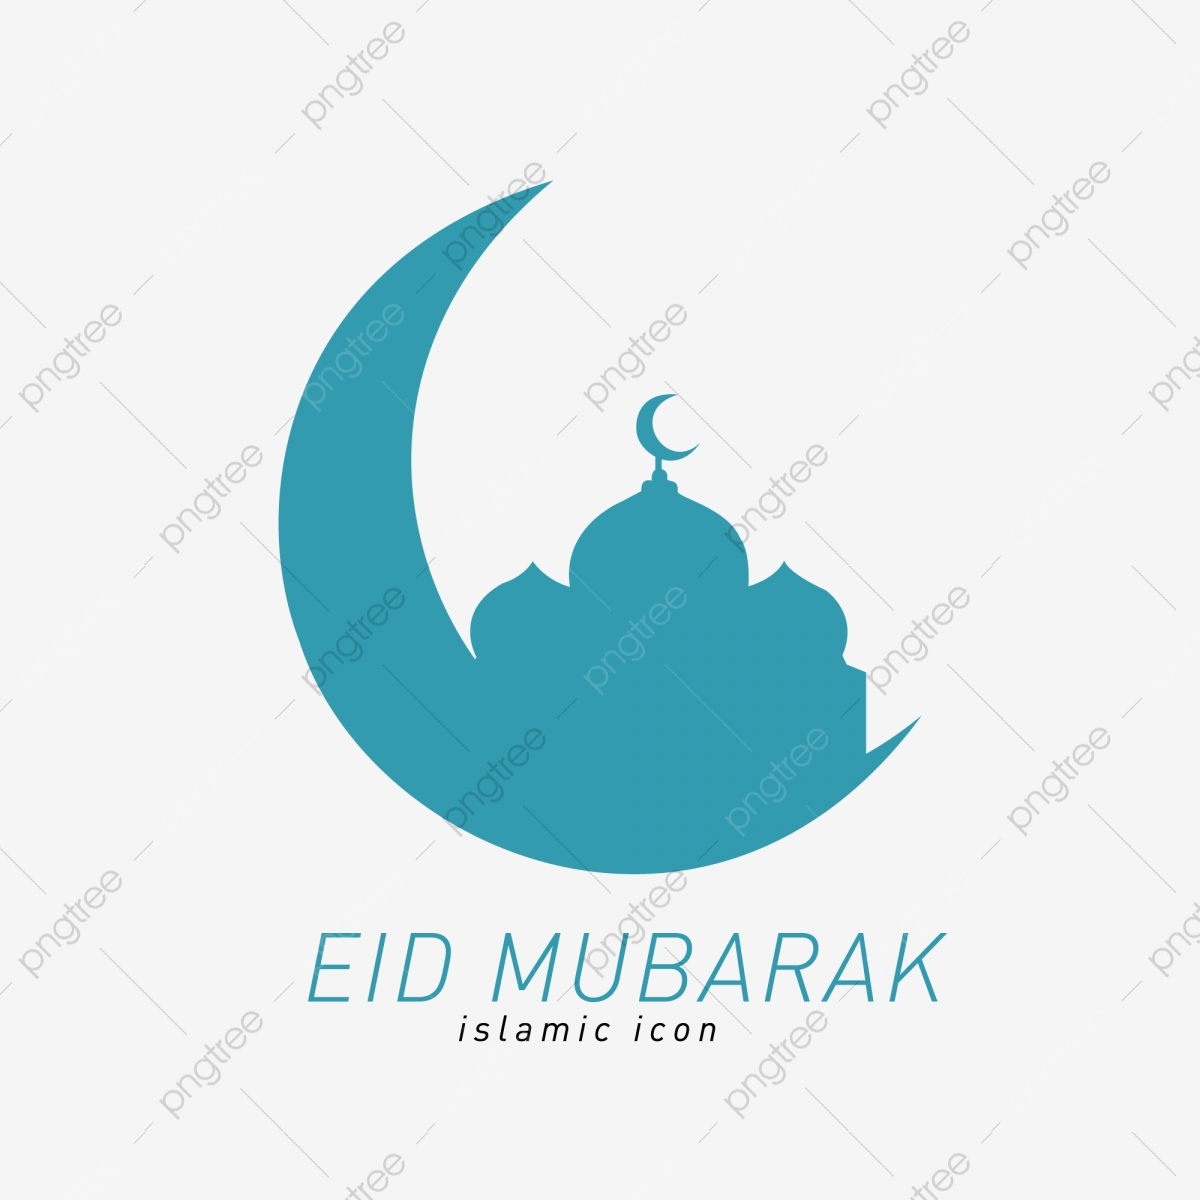 Eid Mubarak Islamic Icon Woman Line Man Png And Vector With Transparent Background For Free Download